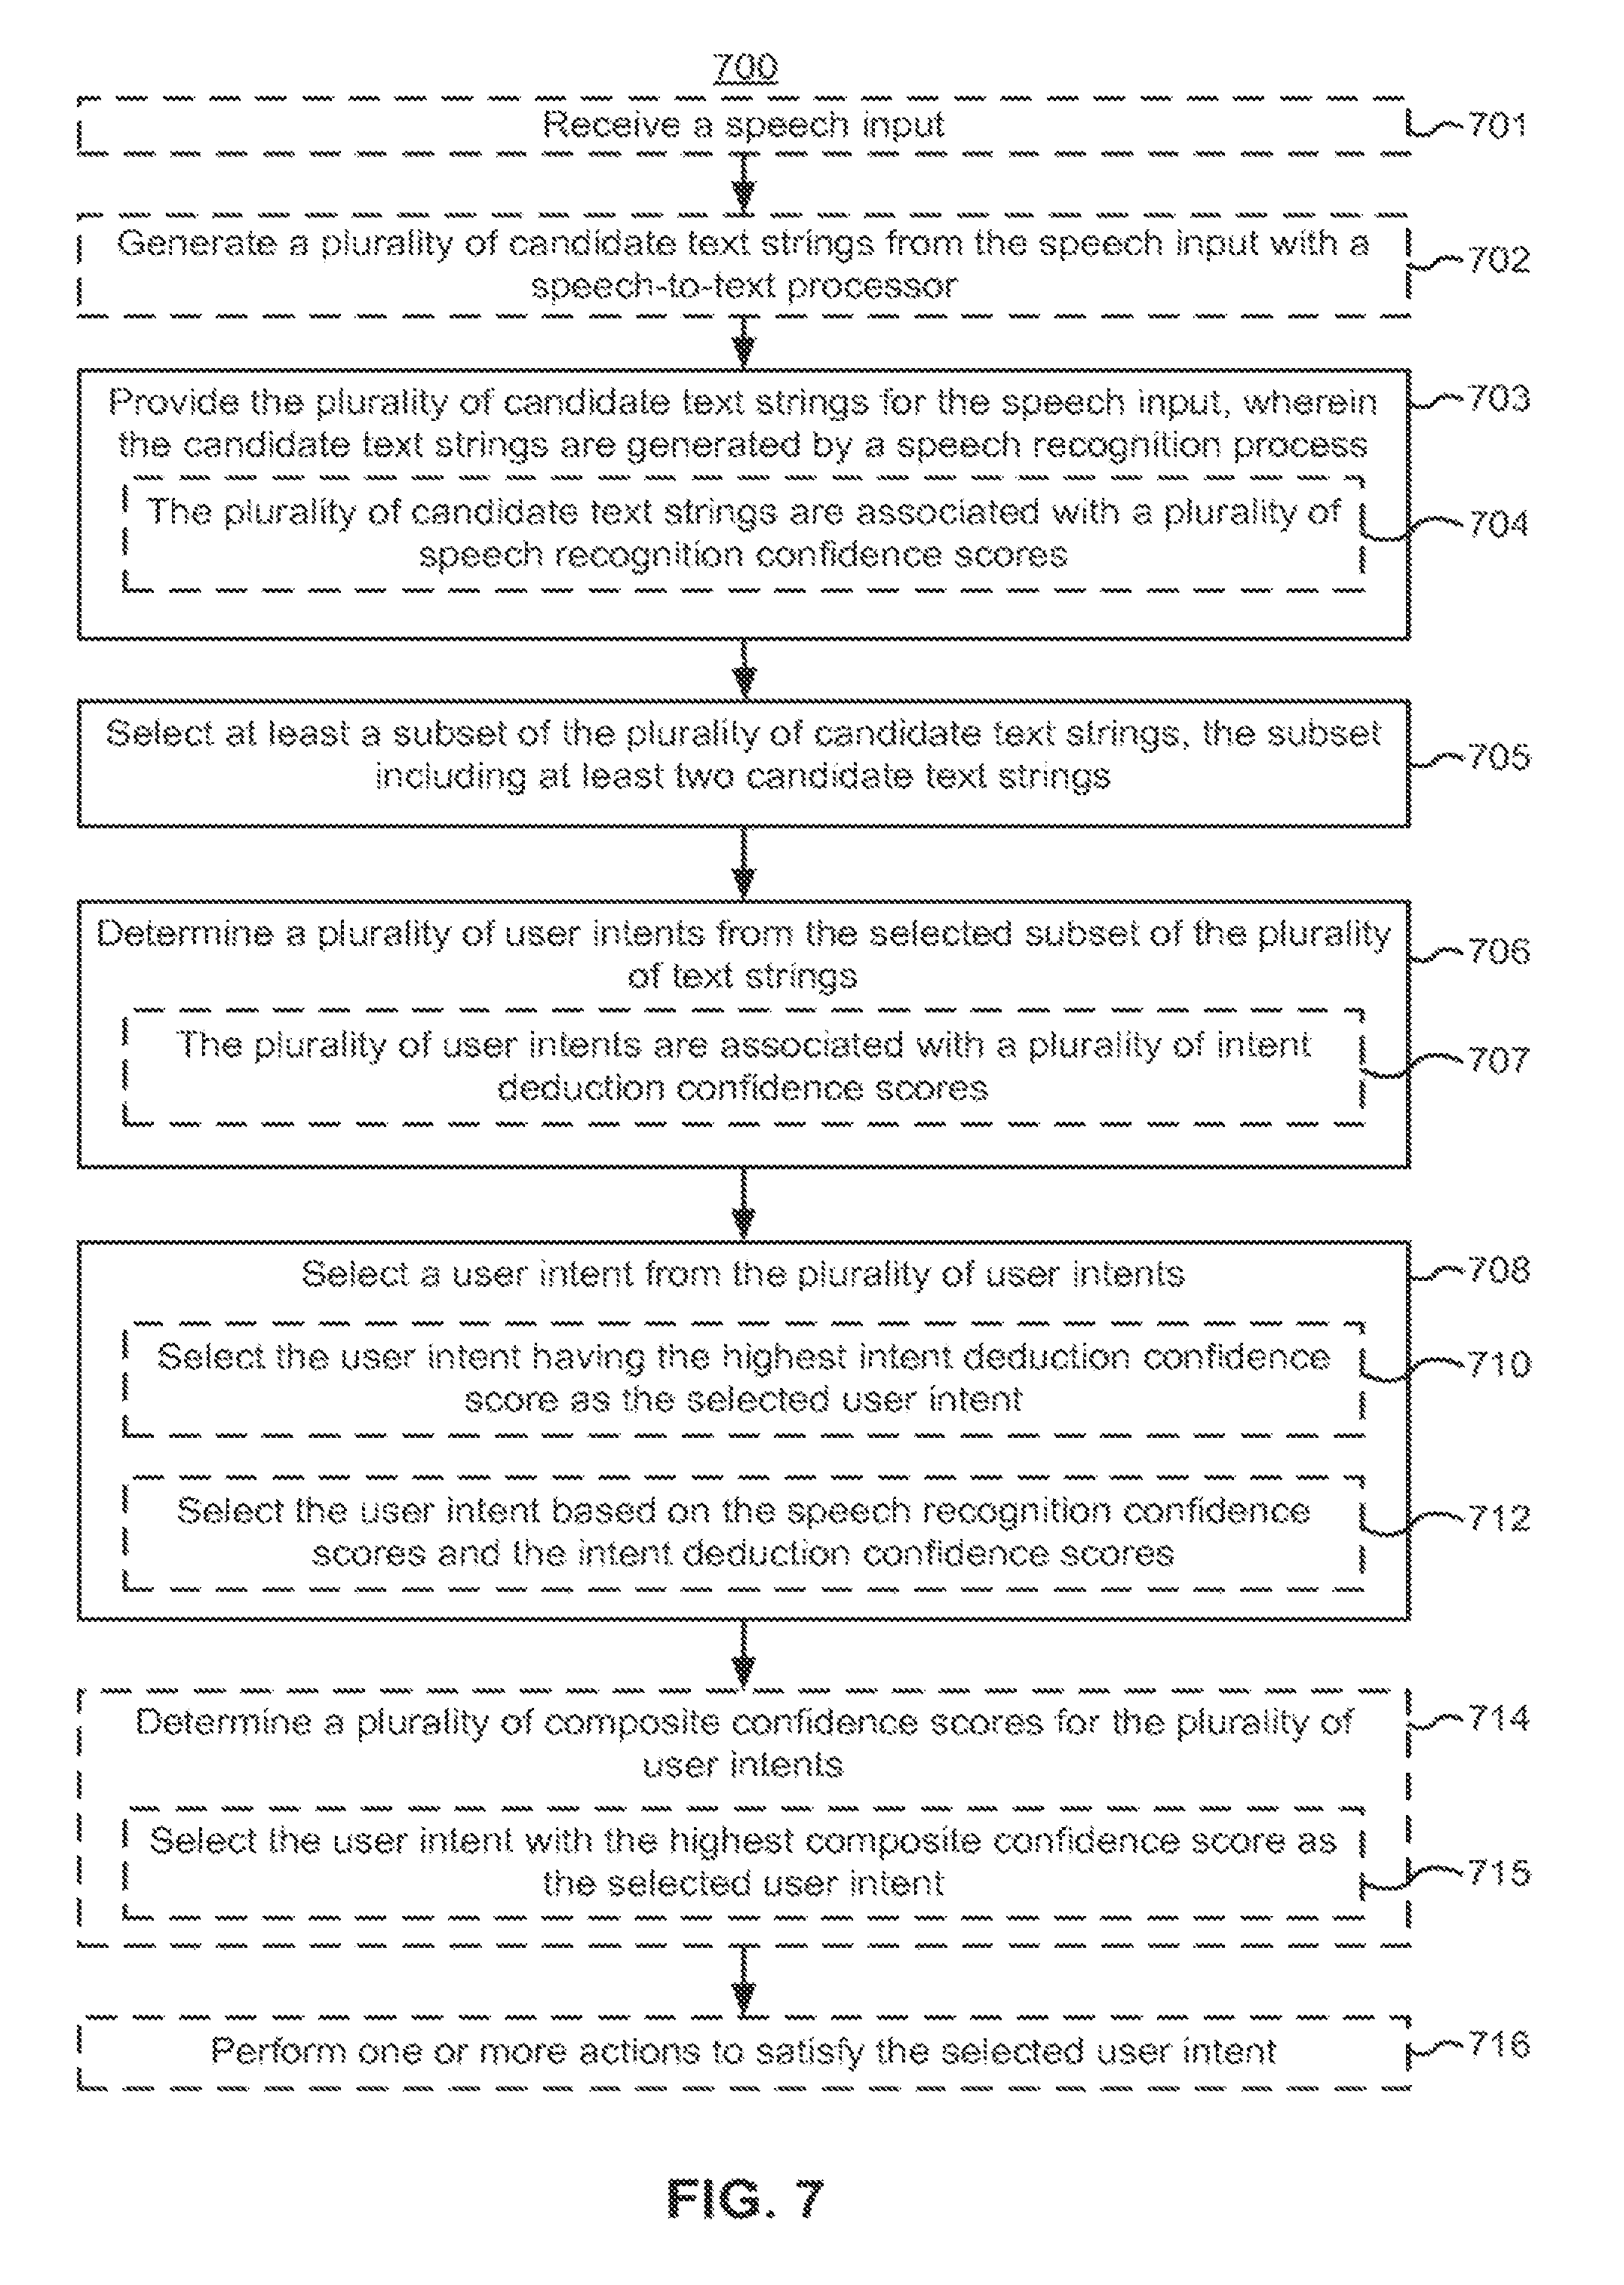 US10176167B2 - System and method for inferring user intent